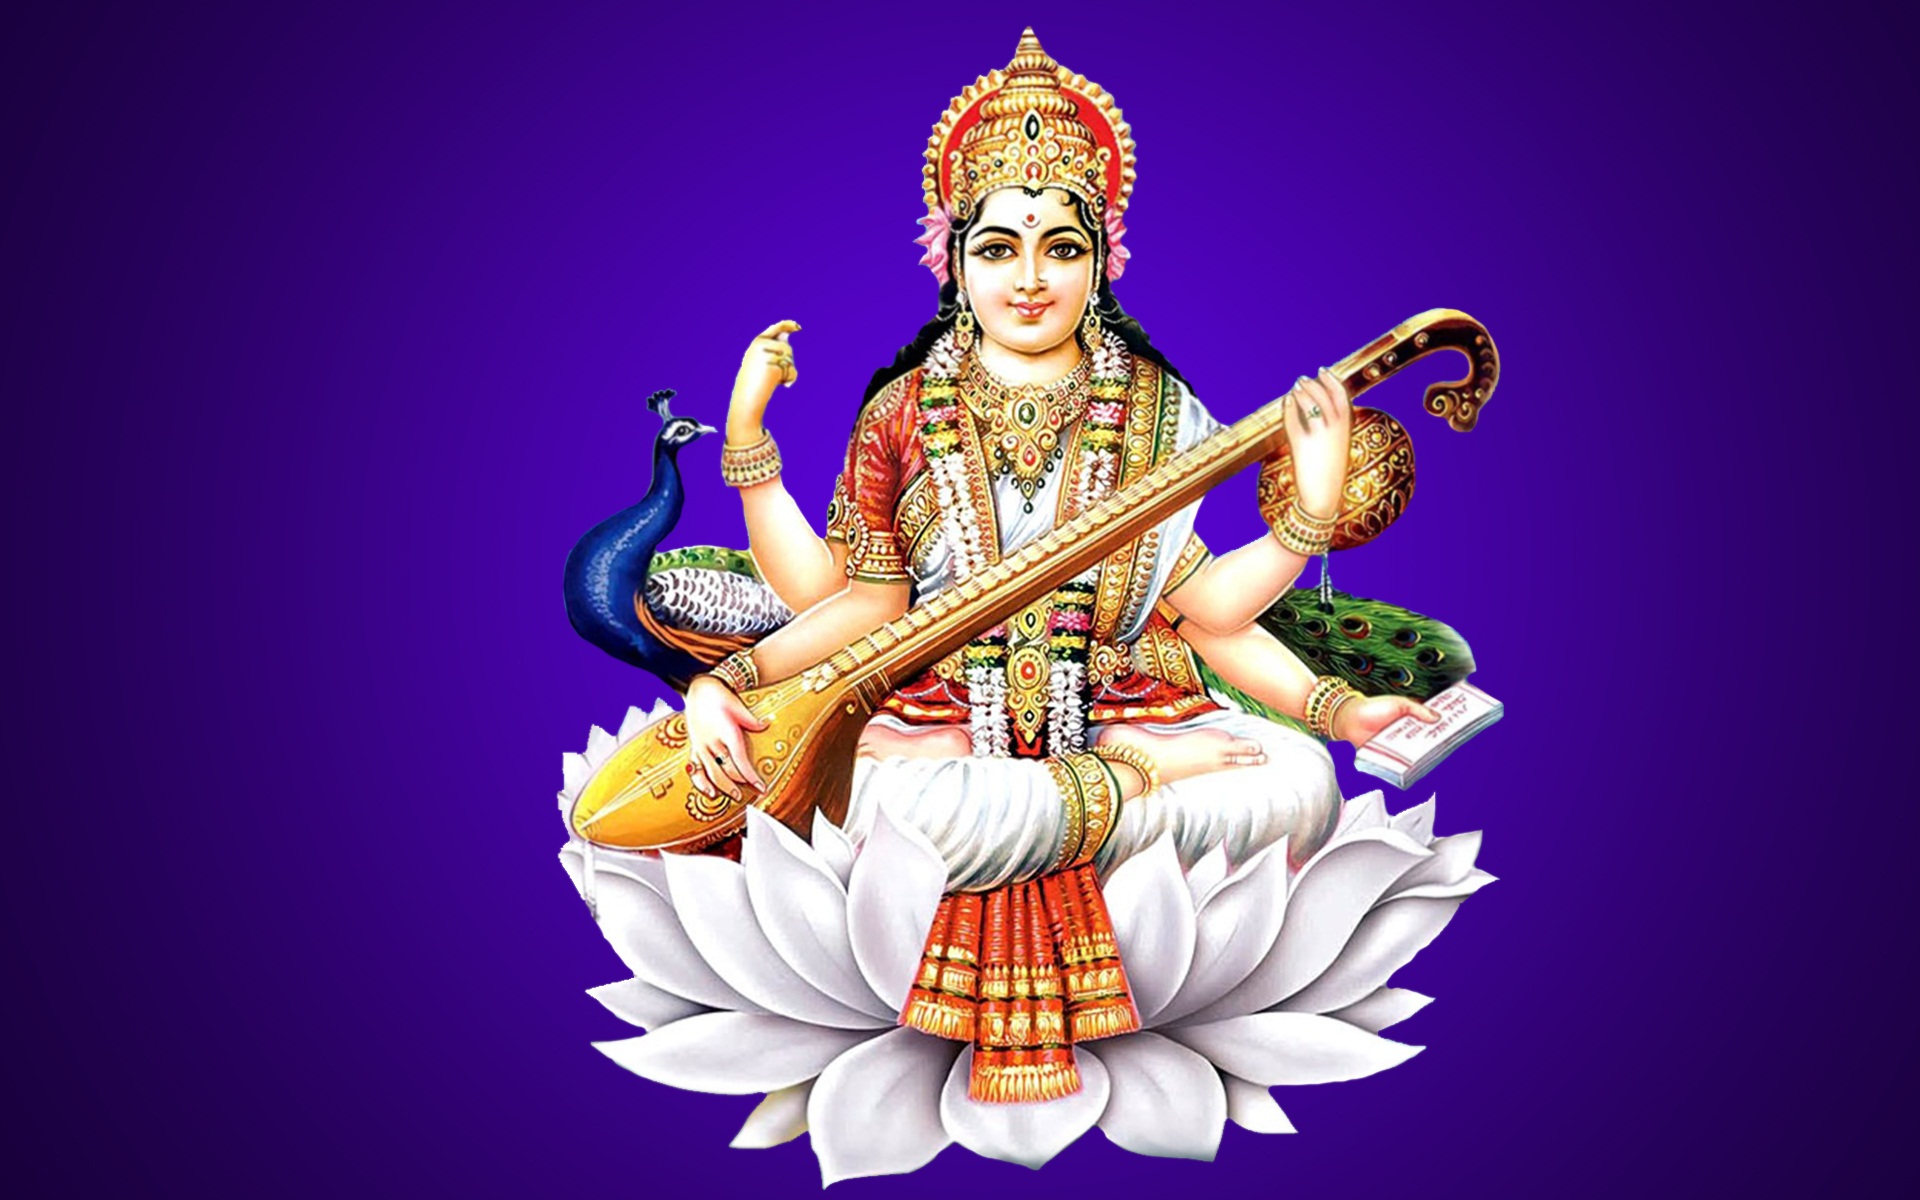 Maa saraswati chalisa in english Cover picture